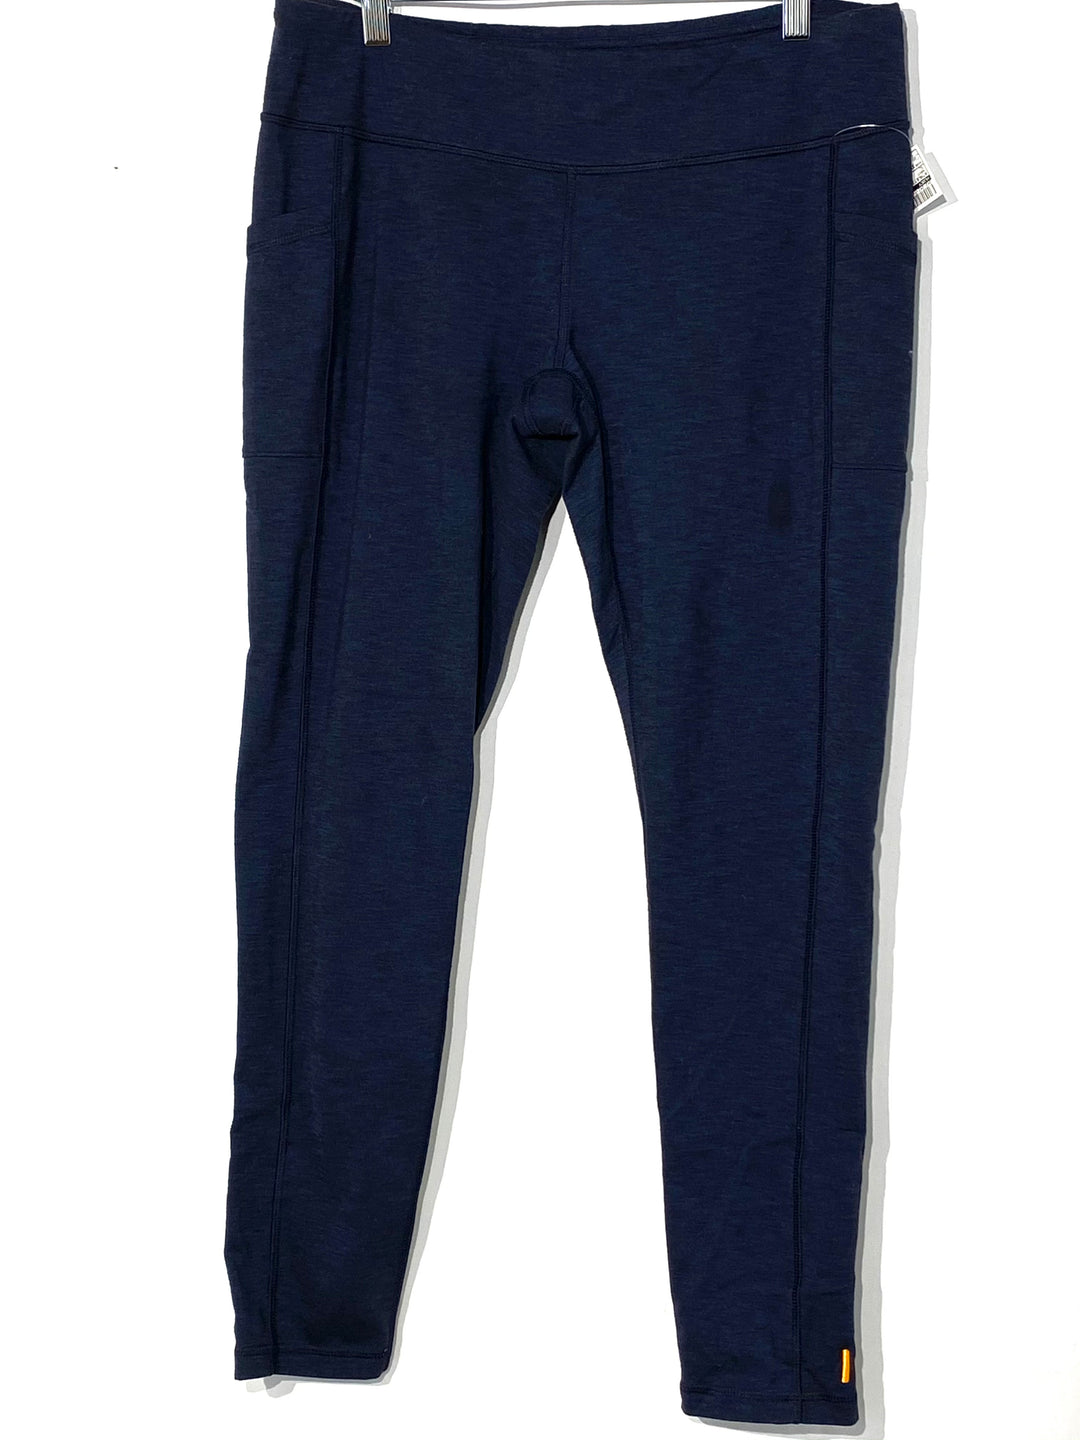 Primary Photo - BRAND: LUCY <BR>STYLE: ATHLETIC PANTS <BR>COLOR: NAVY <BR>SIZE: XL /TG<BR>SKU: 262-26211-141234